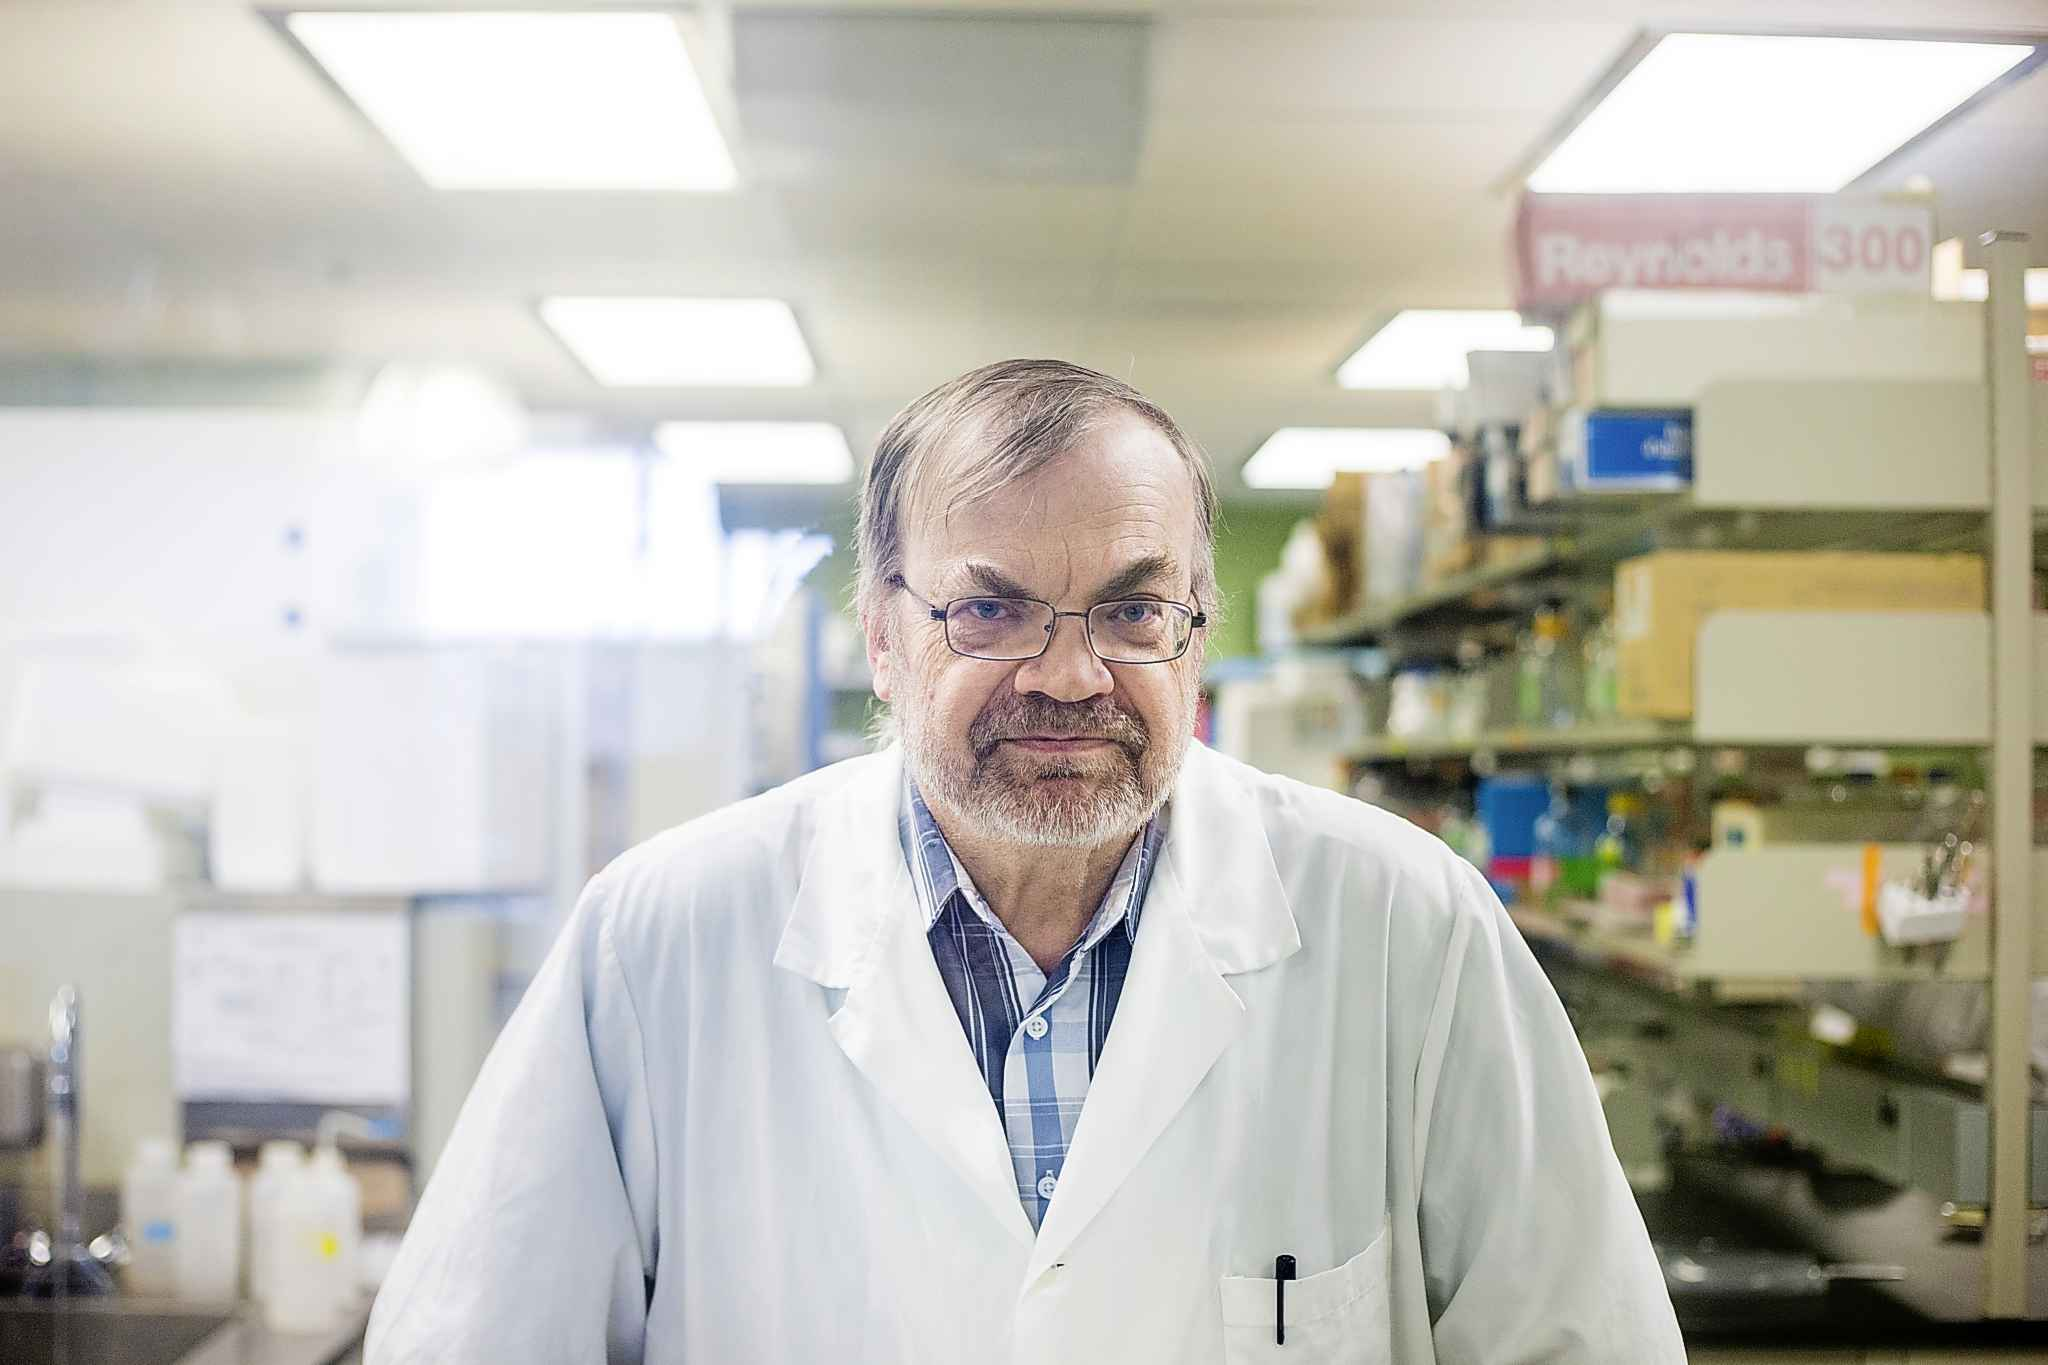 Kevin Coombs, a professor of medical microbiology at the University of Manitoba, said he is fascinated by the way something so small can cause so much misery.